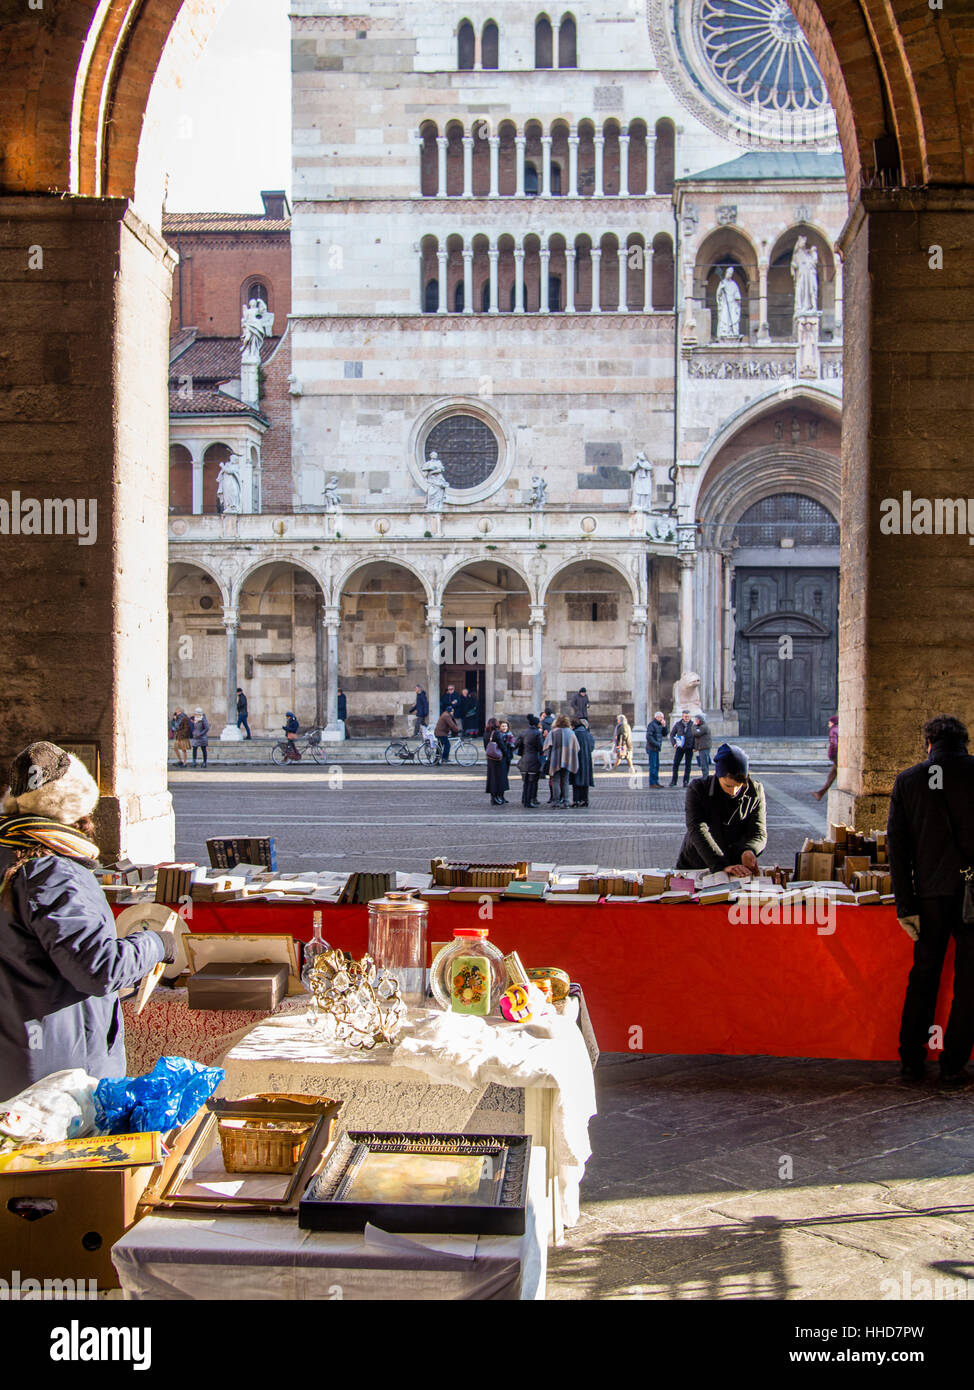 Book seller in street market, winter time, Lombardy, Italy - Stock Image